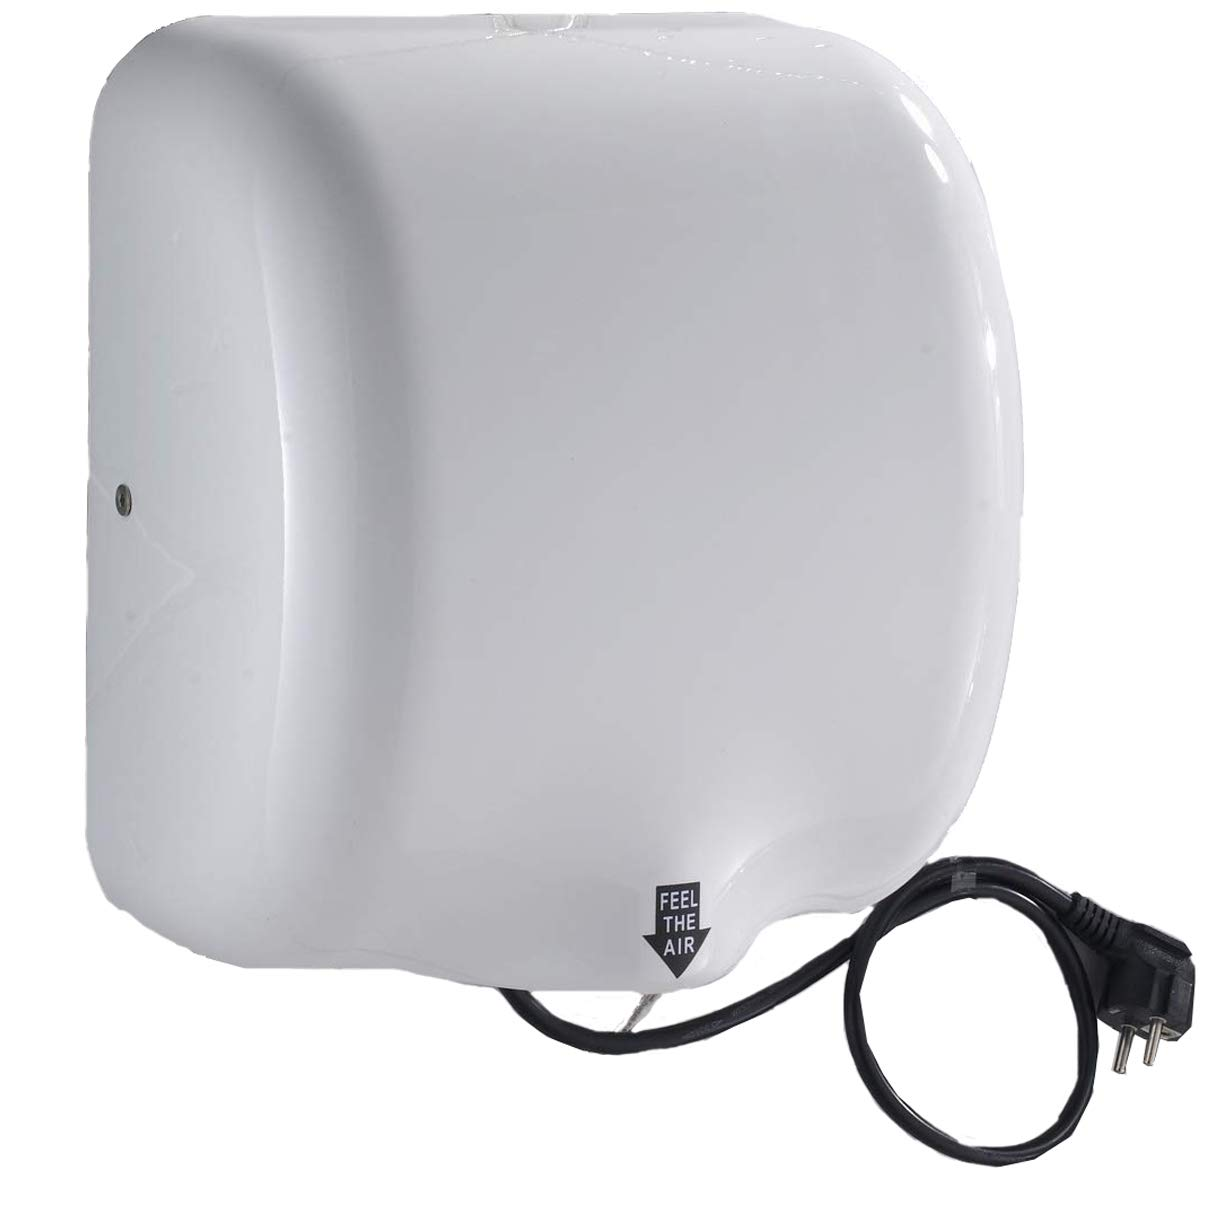 Mophorn 1800W Automatic Hand Dryer 110V Stainless Steel Commercial Electric for Hotel Home Bathrooms (White), Ceramic Type/1800W